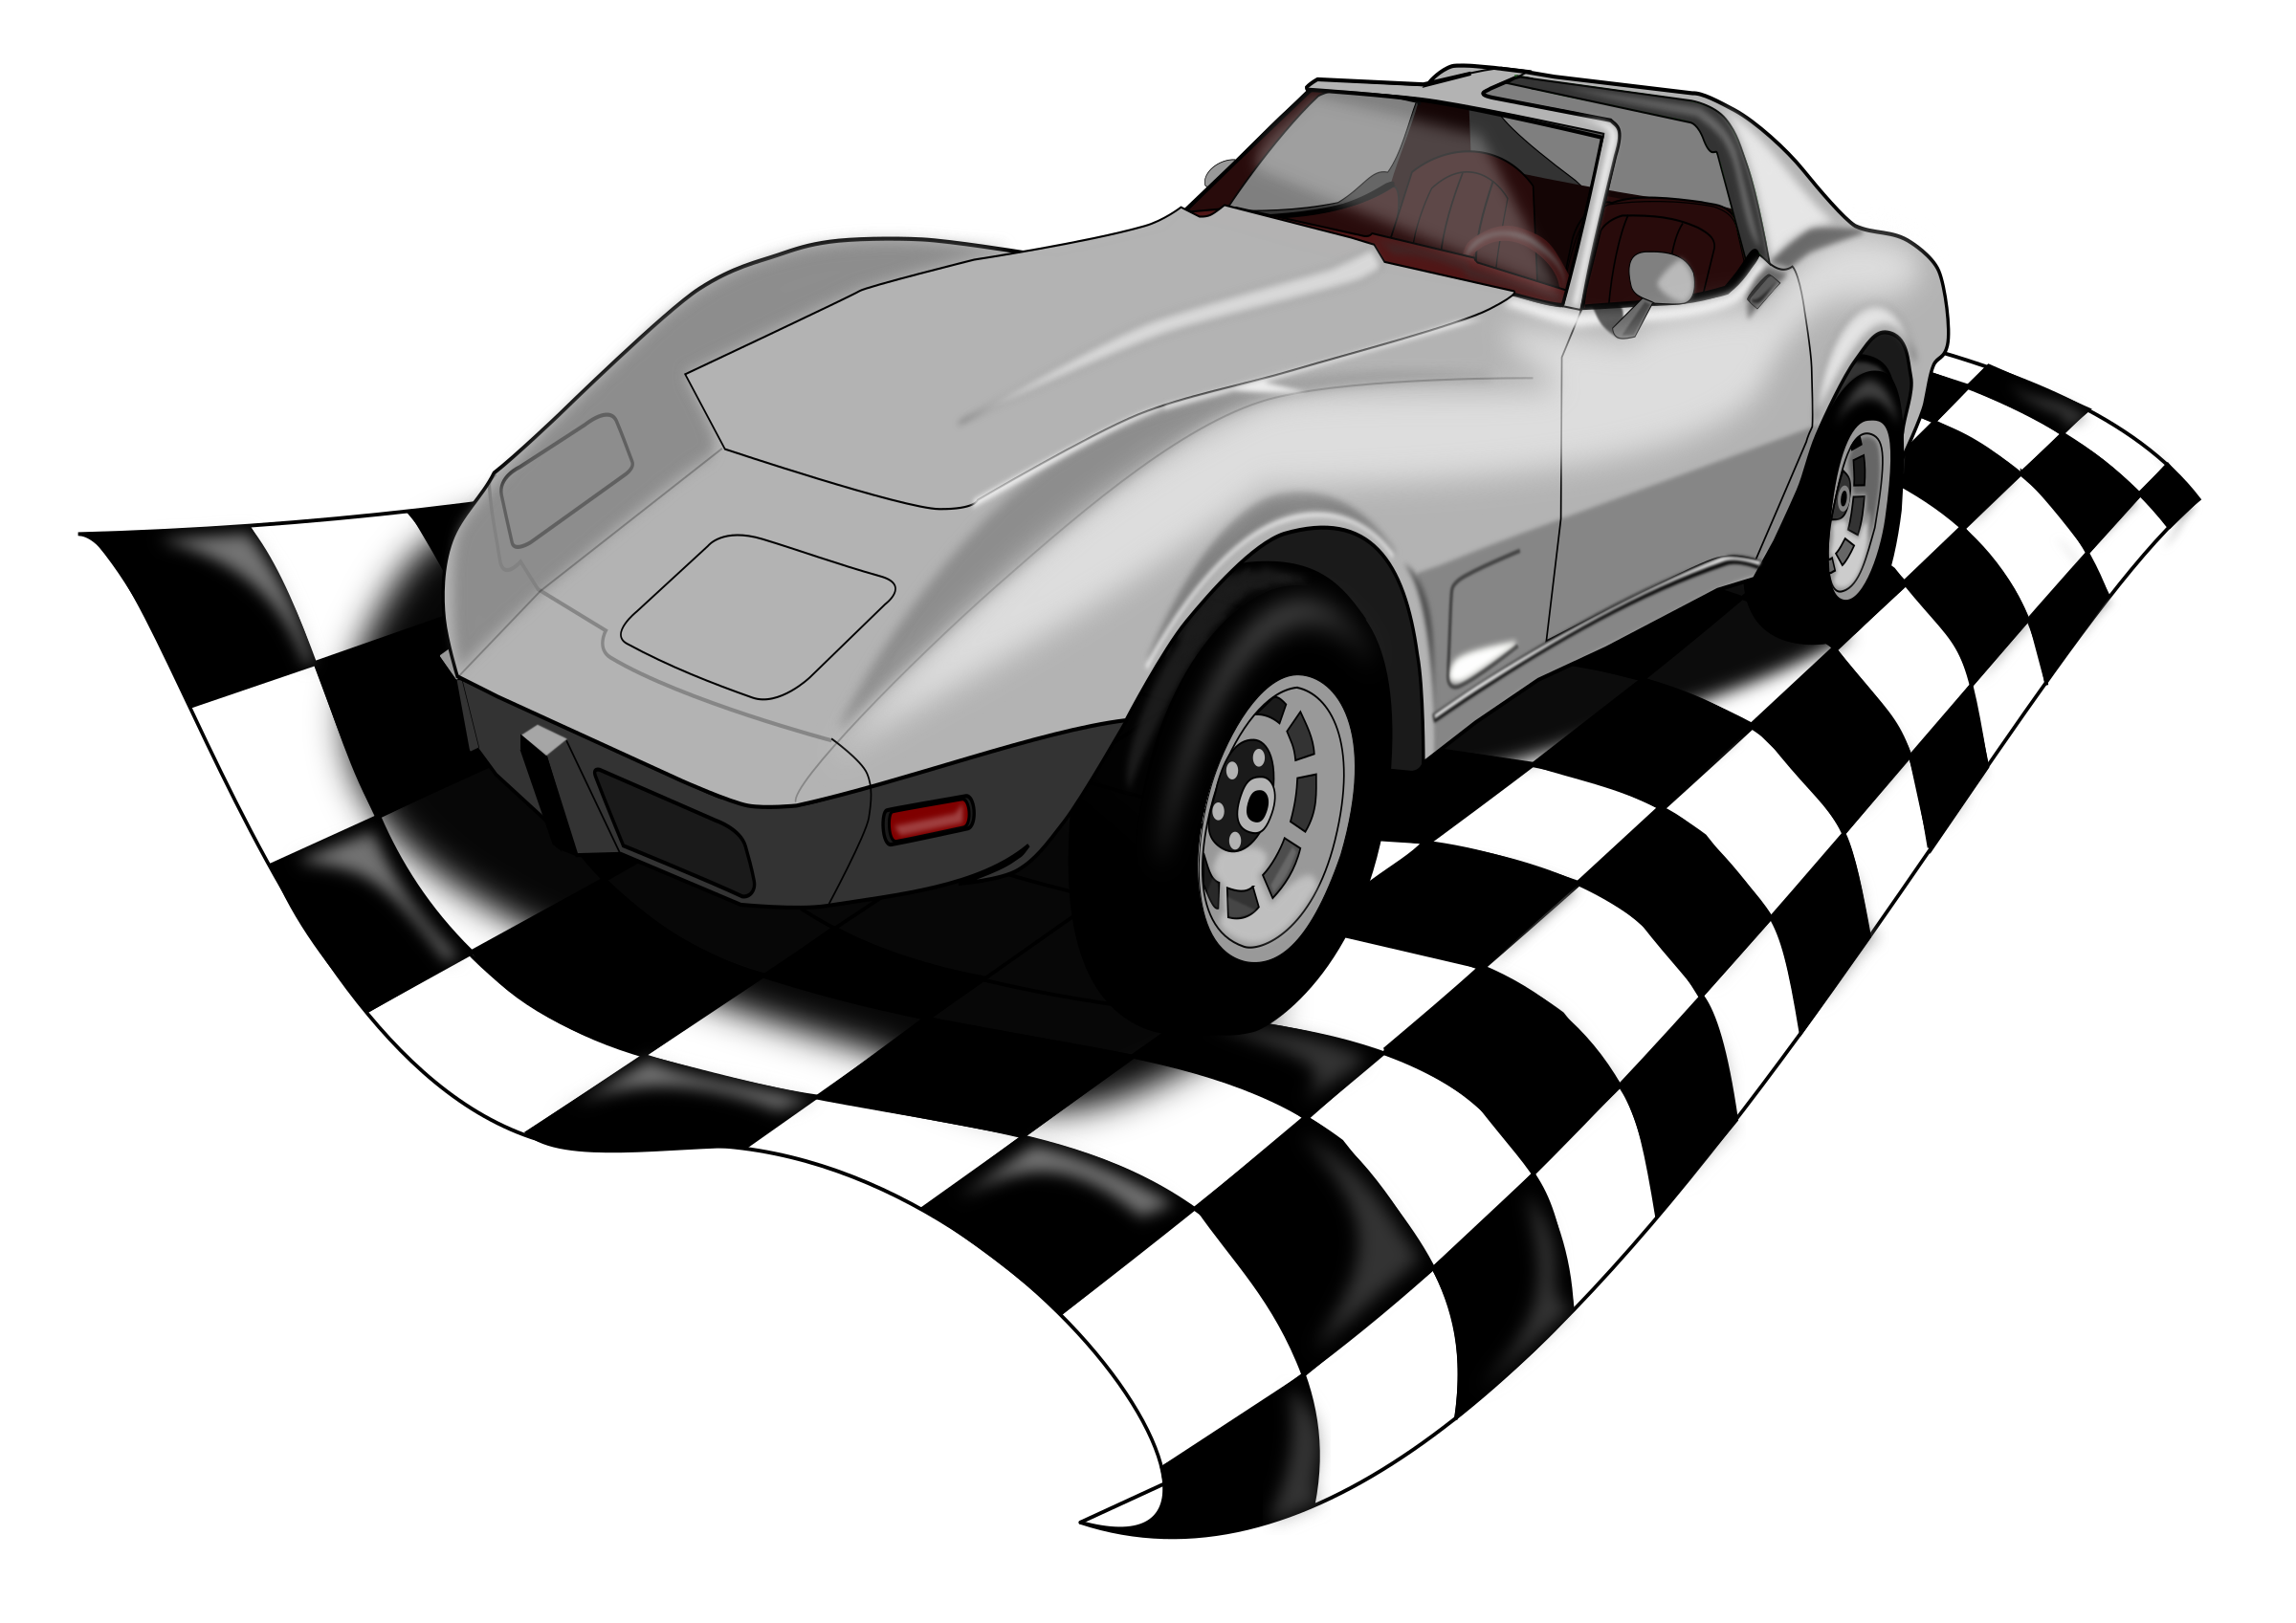 Checkervette by dashell